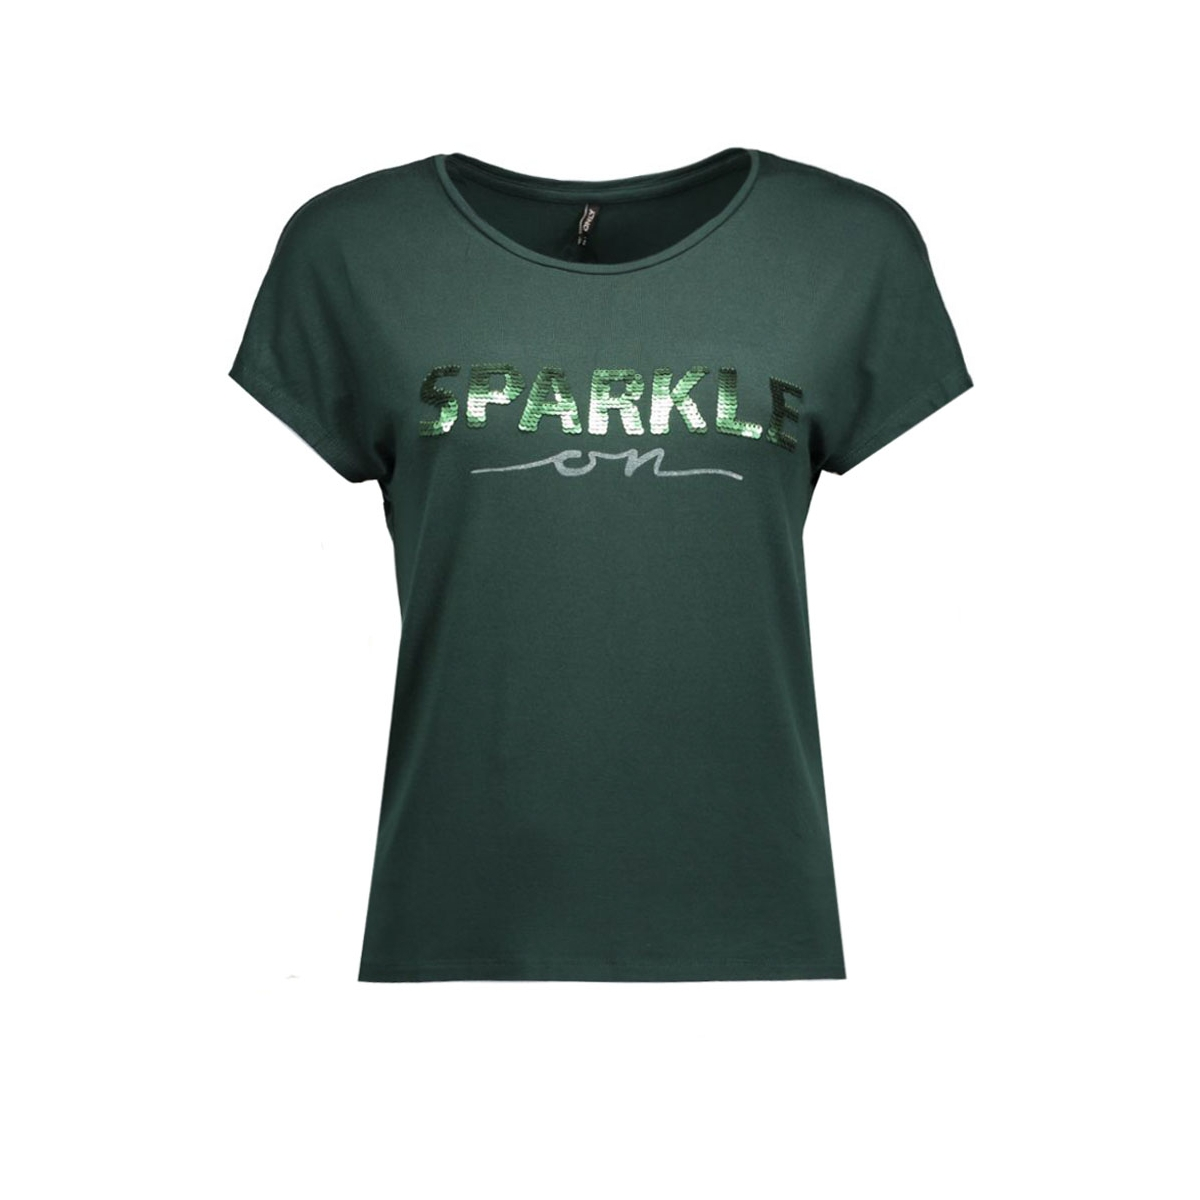 onlsally s/s a/sparkle top box ess 15124415 only t-shirt scarab/sparkle